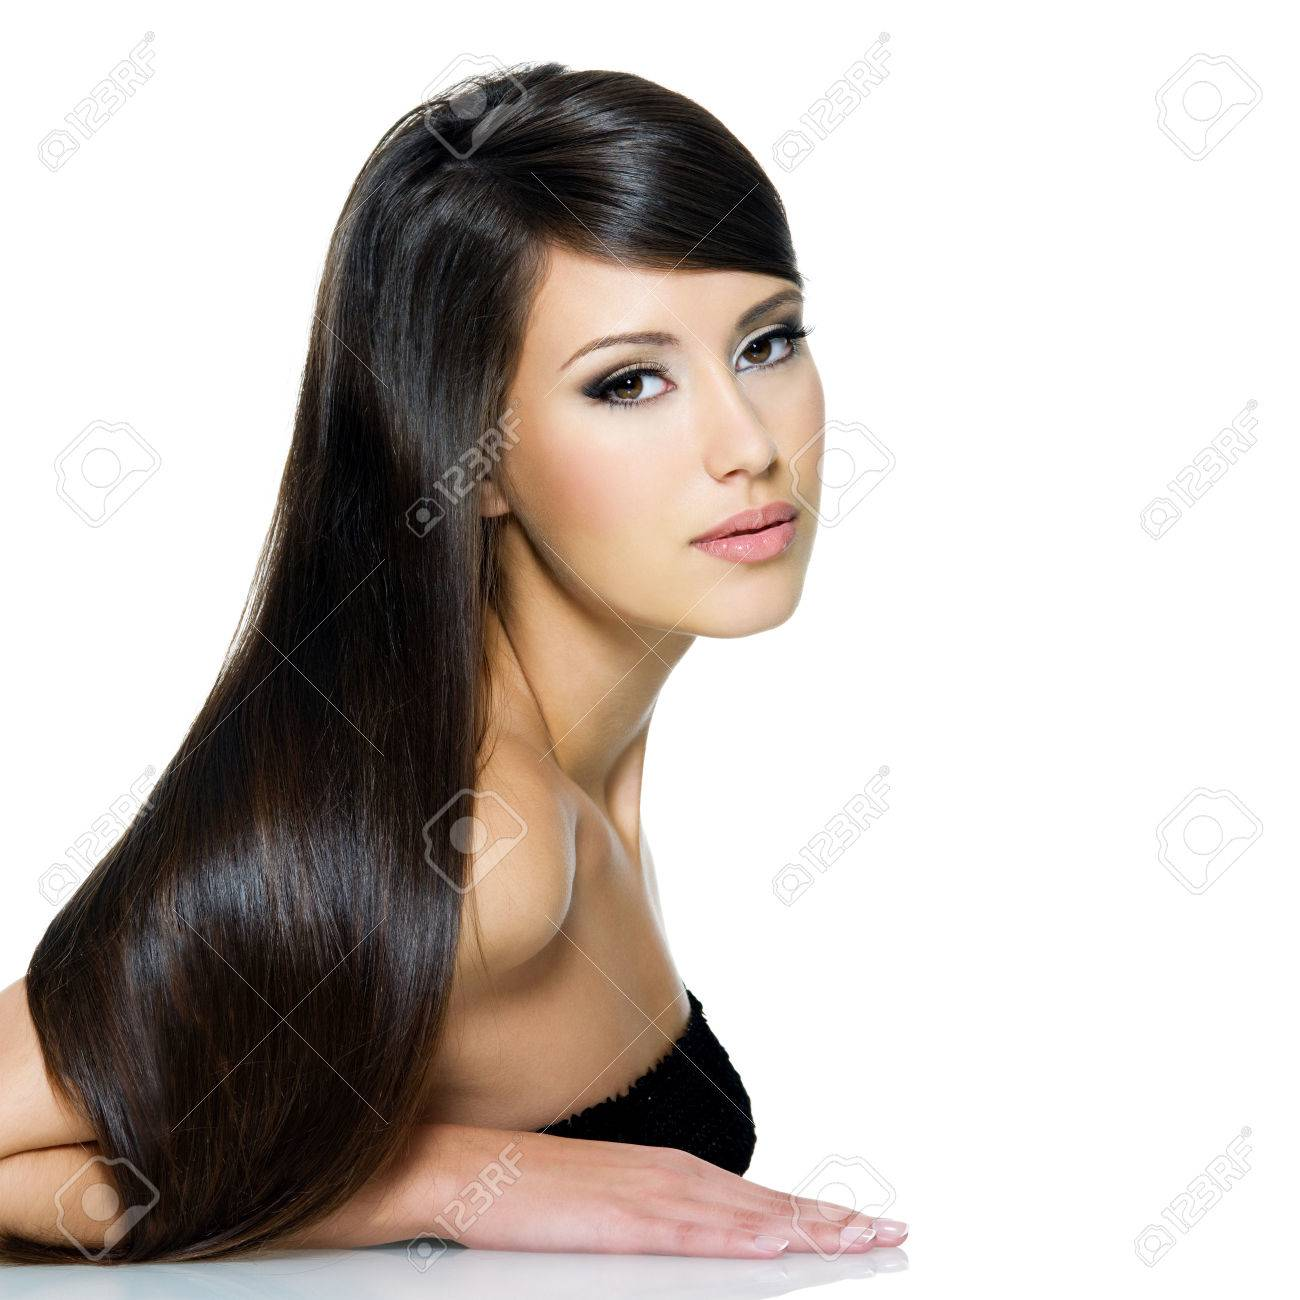 Portrait of beautiful young woman with long straight brown hair posing isolated on white background Stock Photo - 53558591